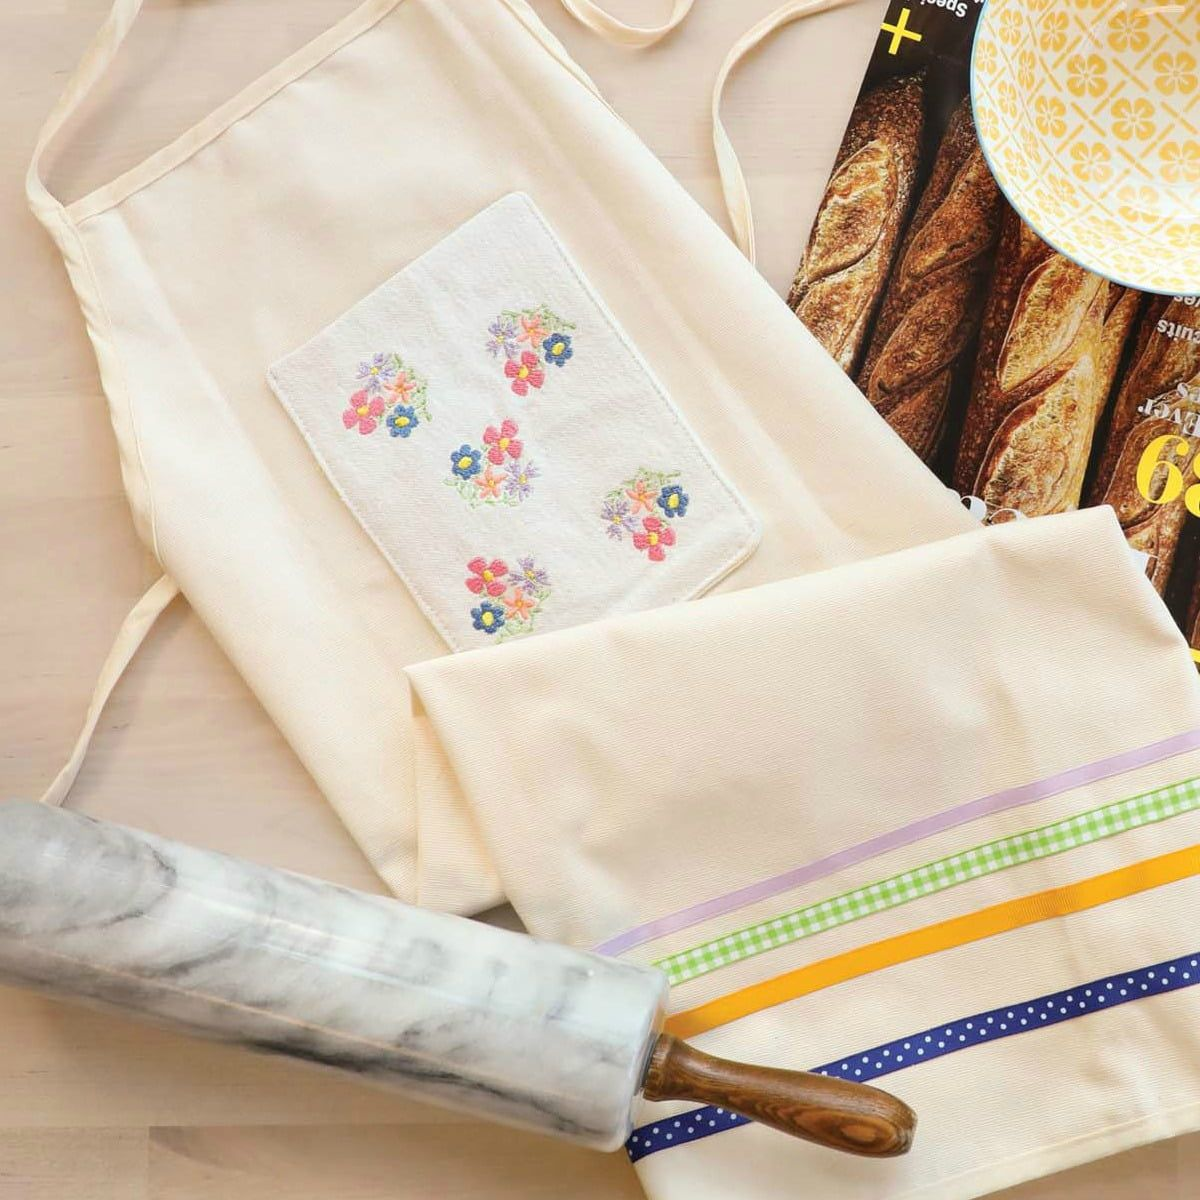 An off-white apron featuring machine-embroidered floral bunches on the front pocket, with colored ribbon trim at the bottom.